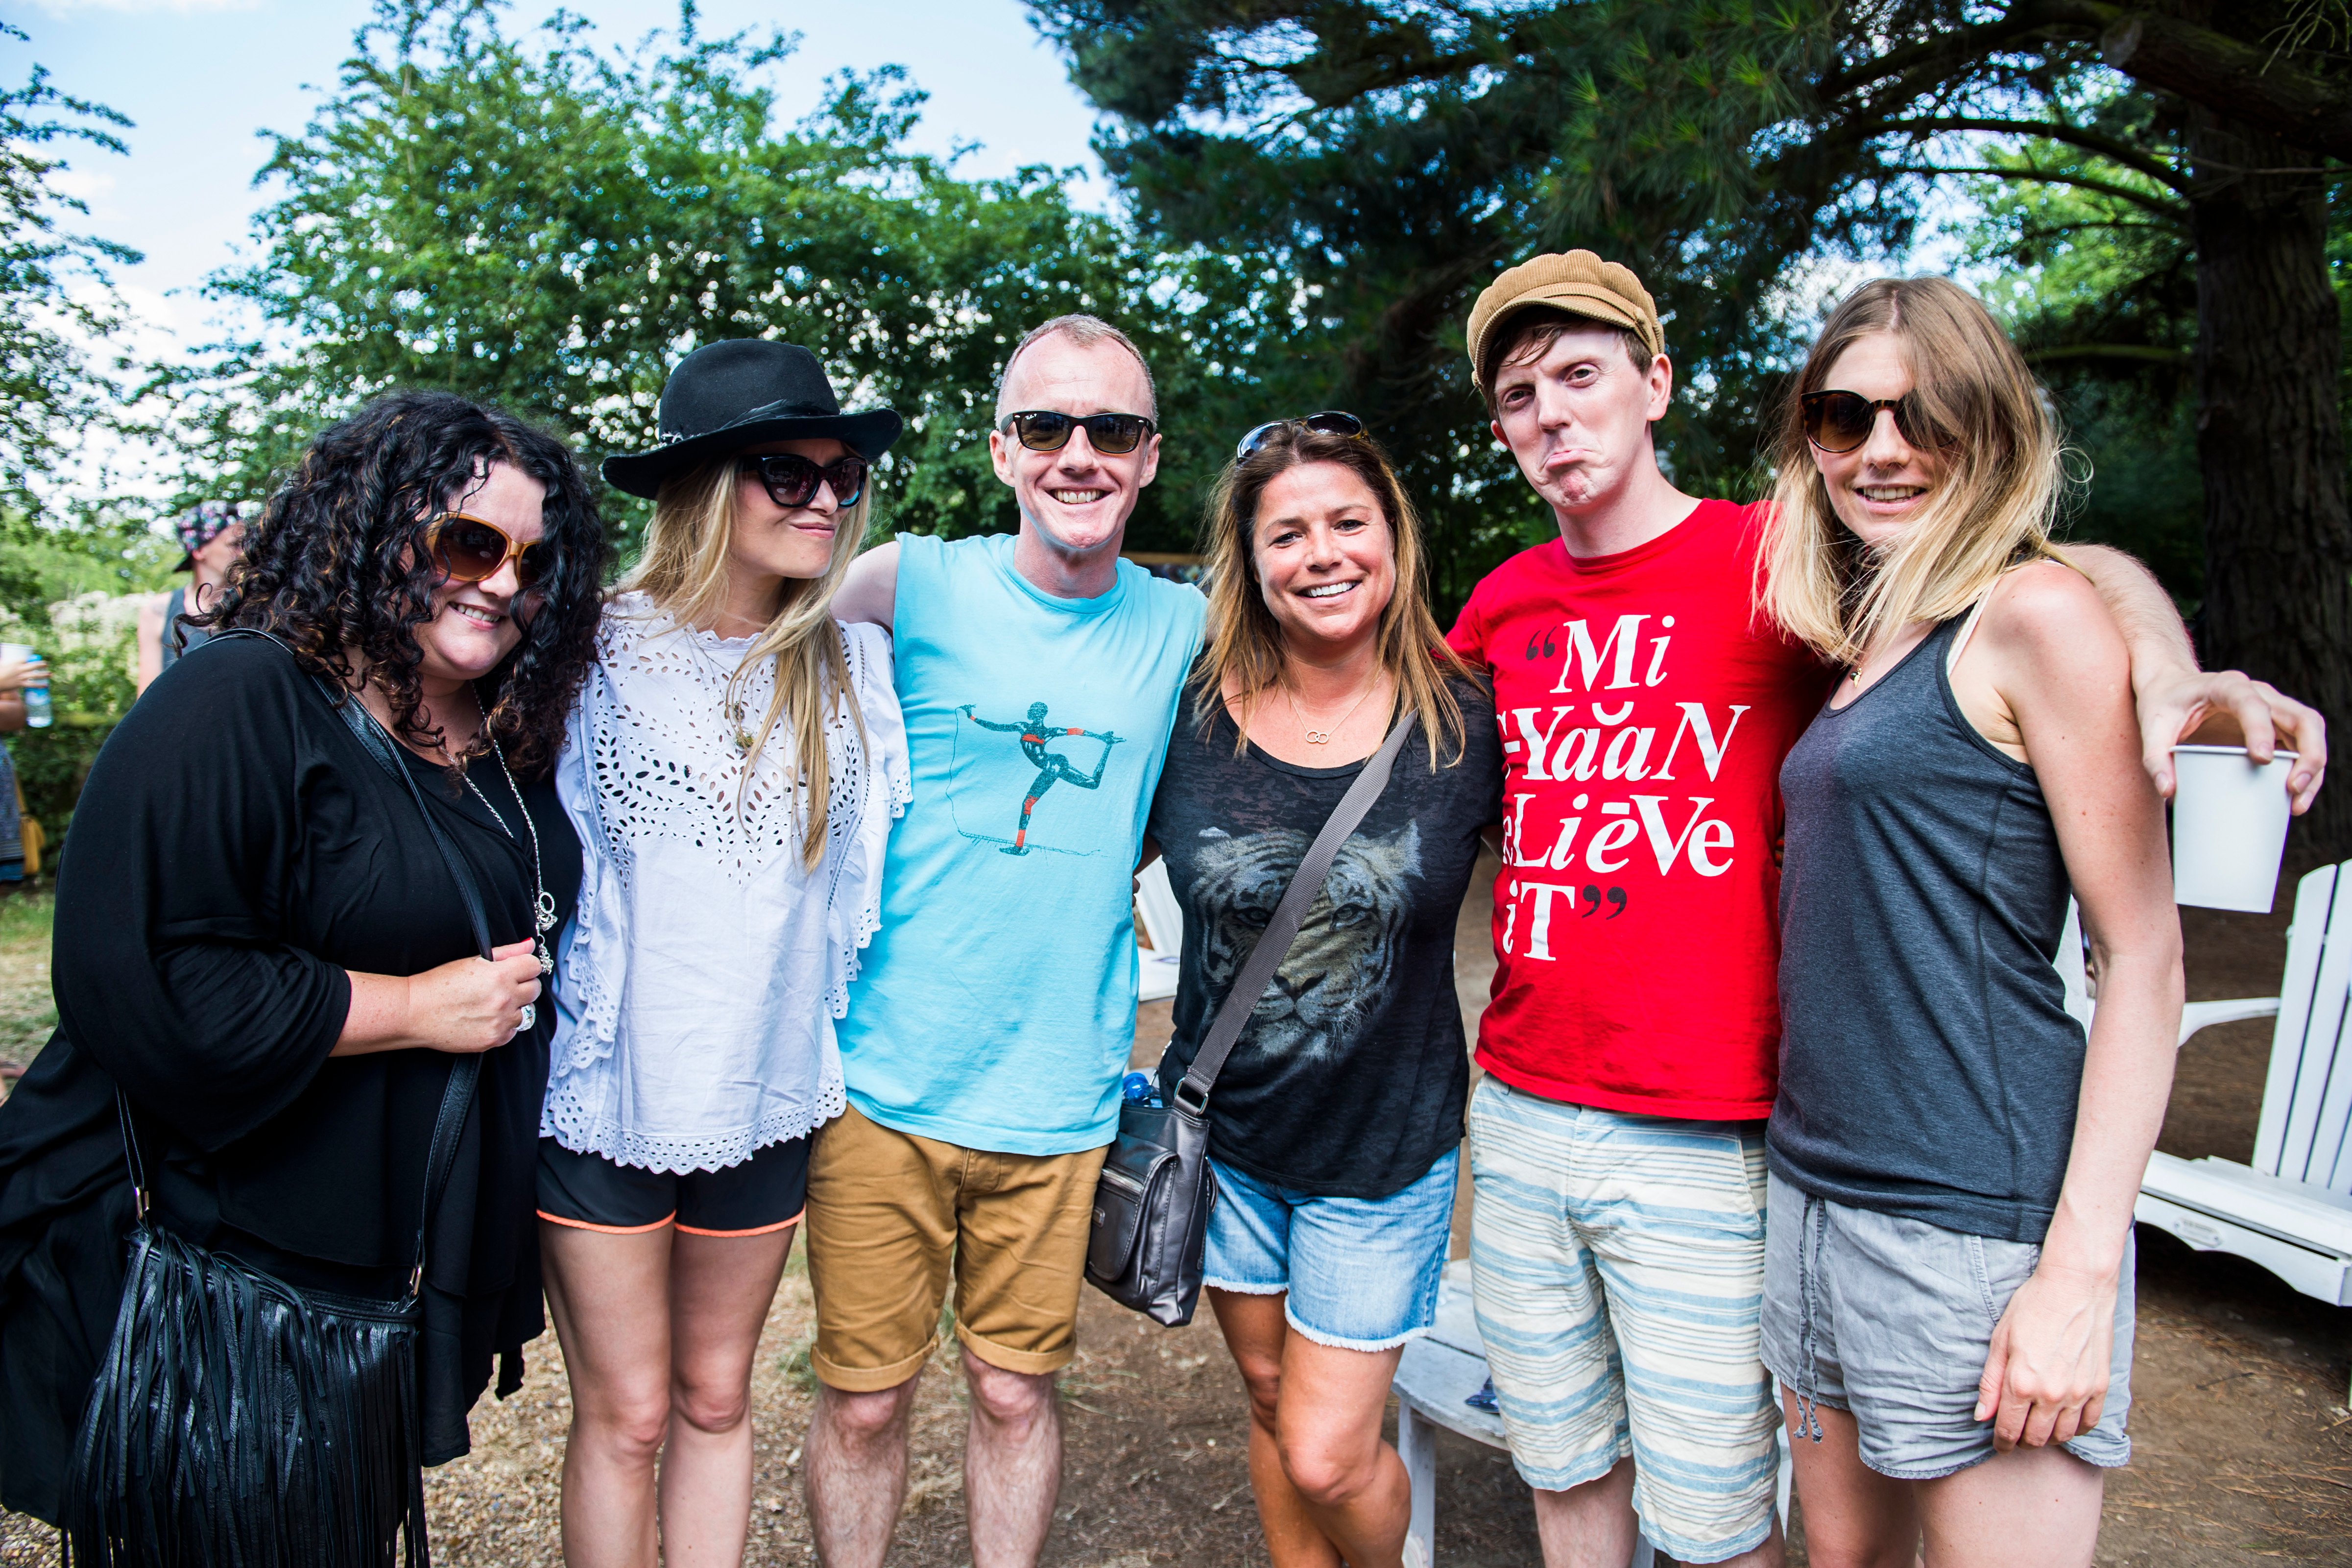 Island Life 2015. Photo by: Carsten Windhorst / FRPAP.com